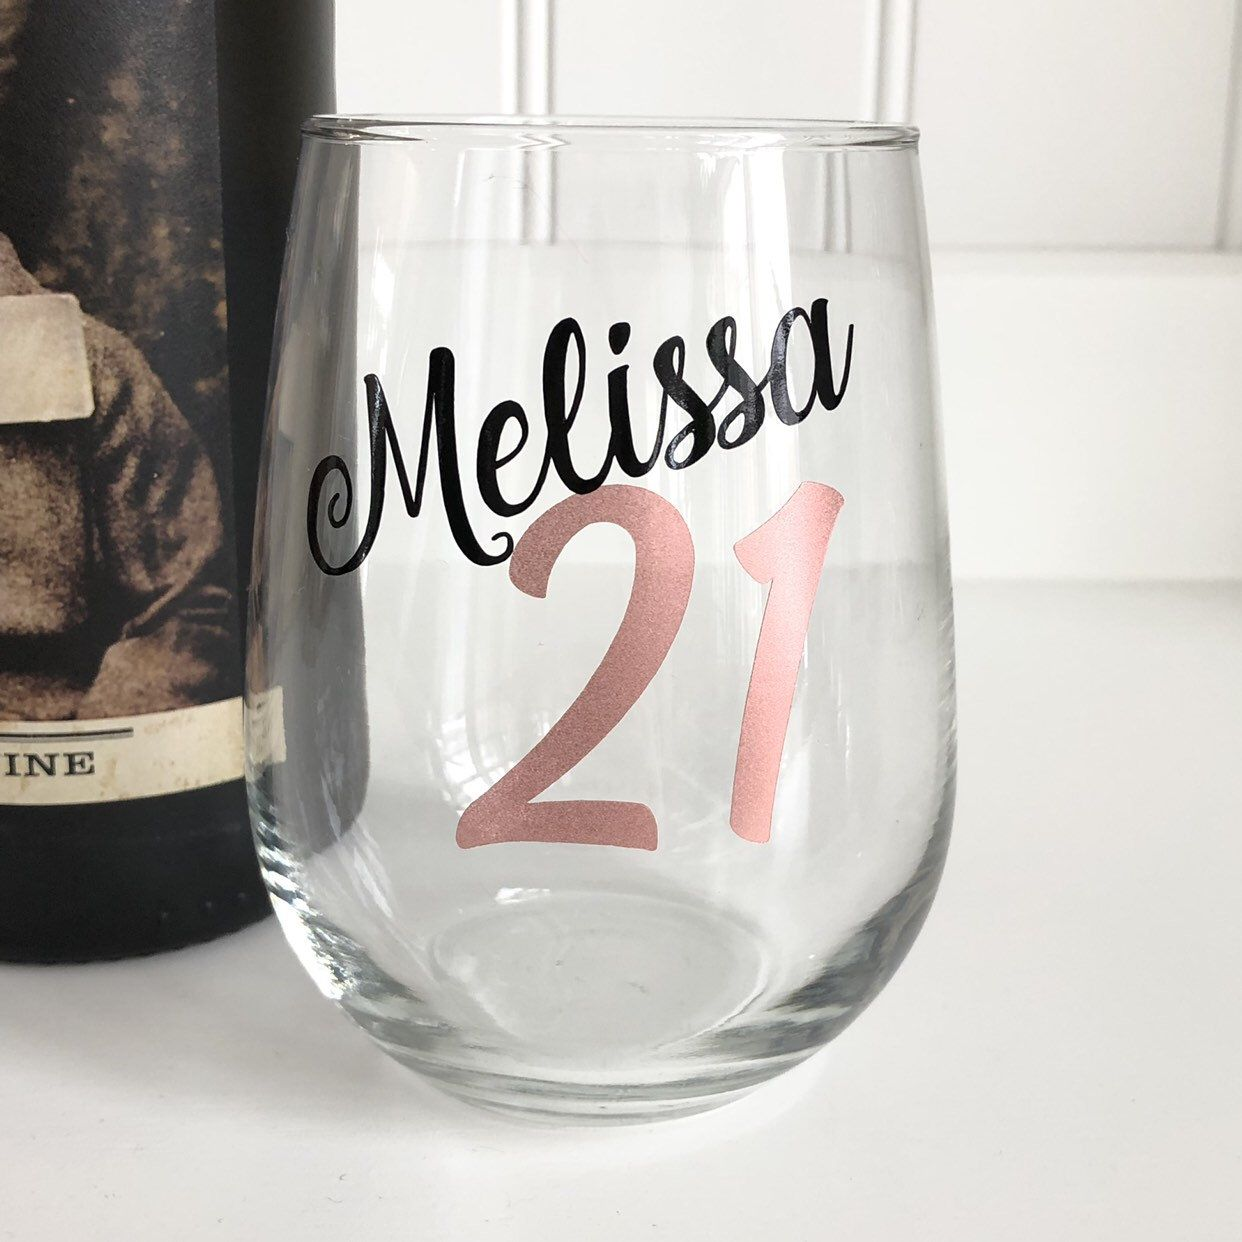 21st Birthday Wine Glass Personalized Gift Finally 21 For Her Legal Cheers To